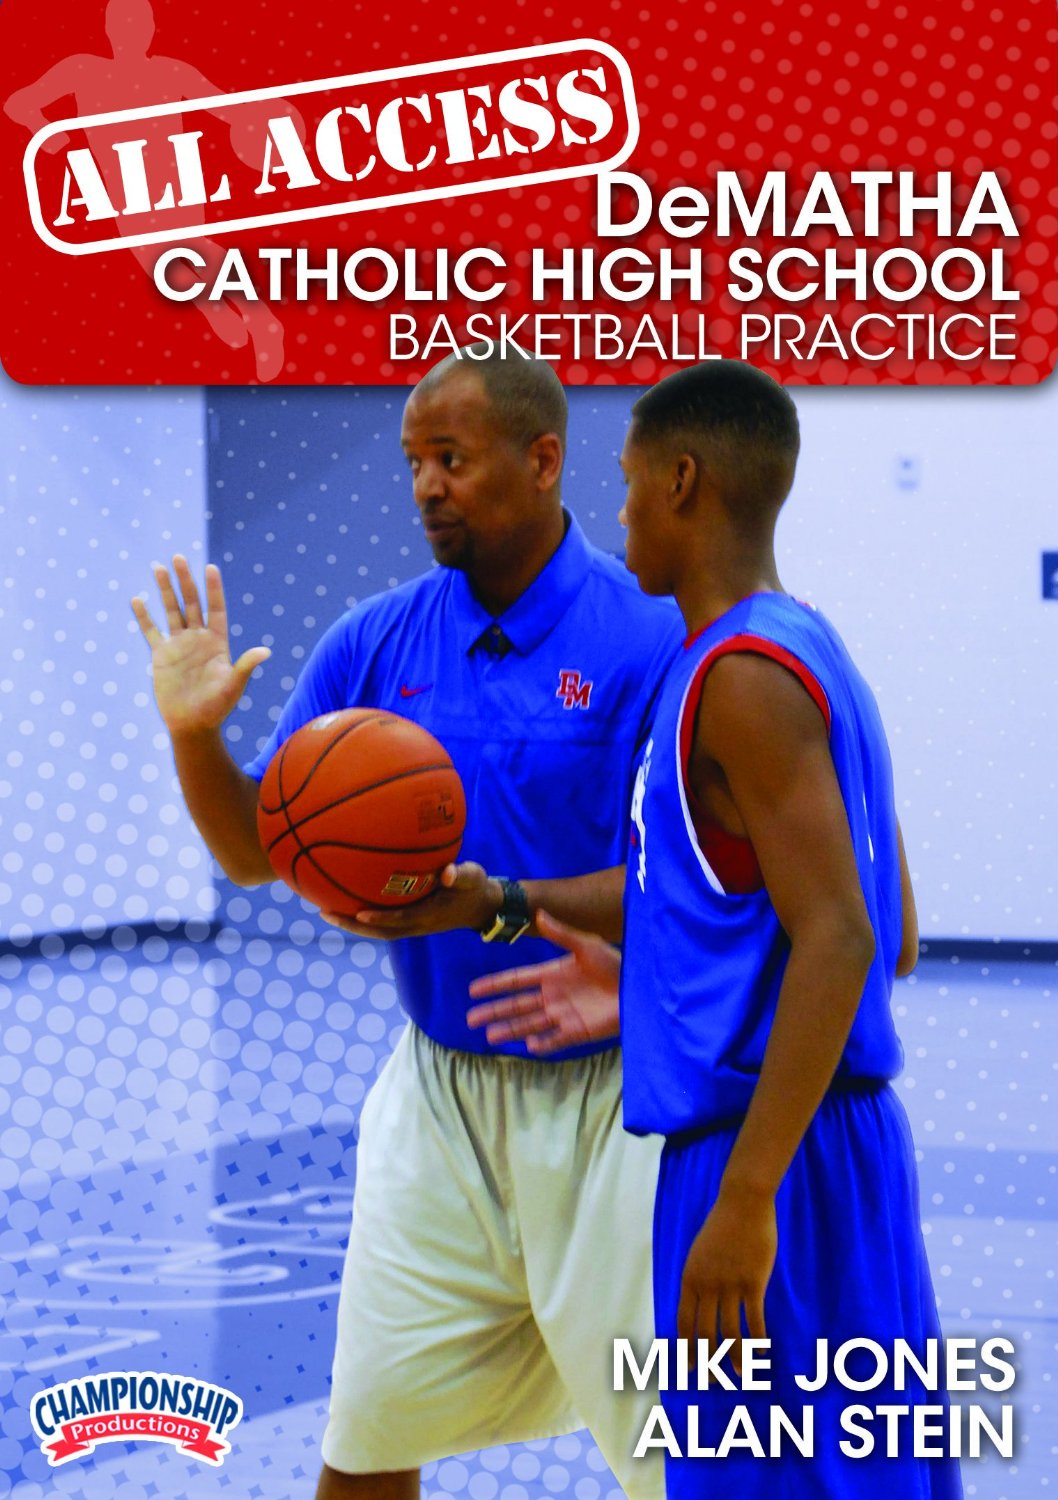 Championship Productions Mike Jones and Alan Stein: All Access Dematha Catholic High School Basketball Practice DVD